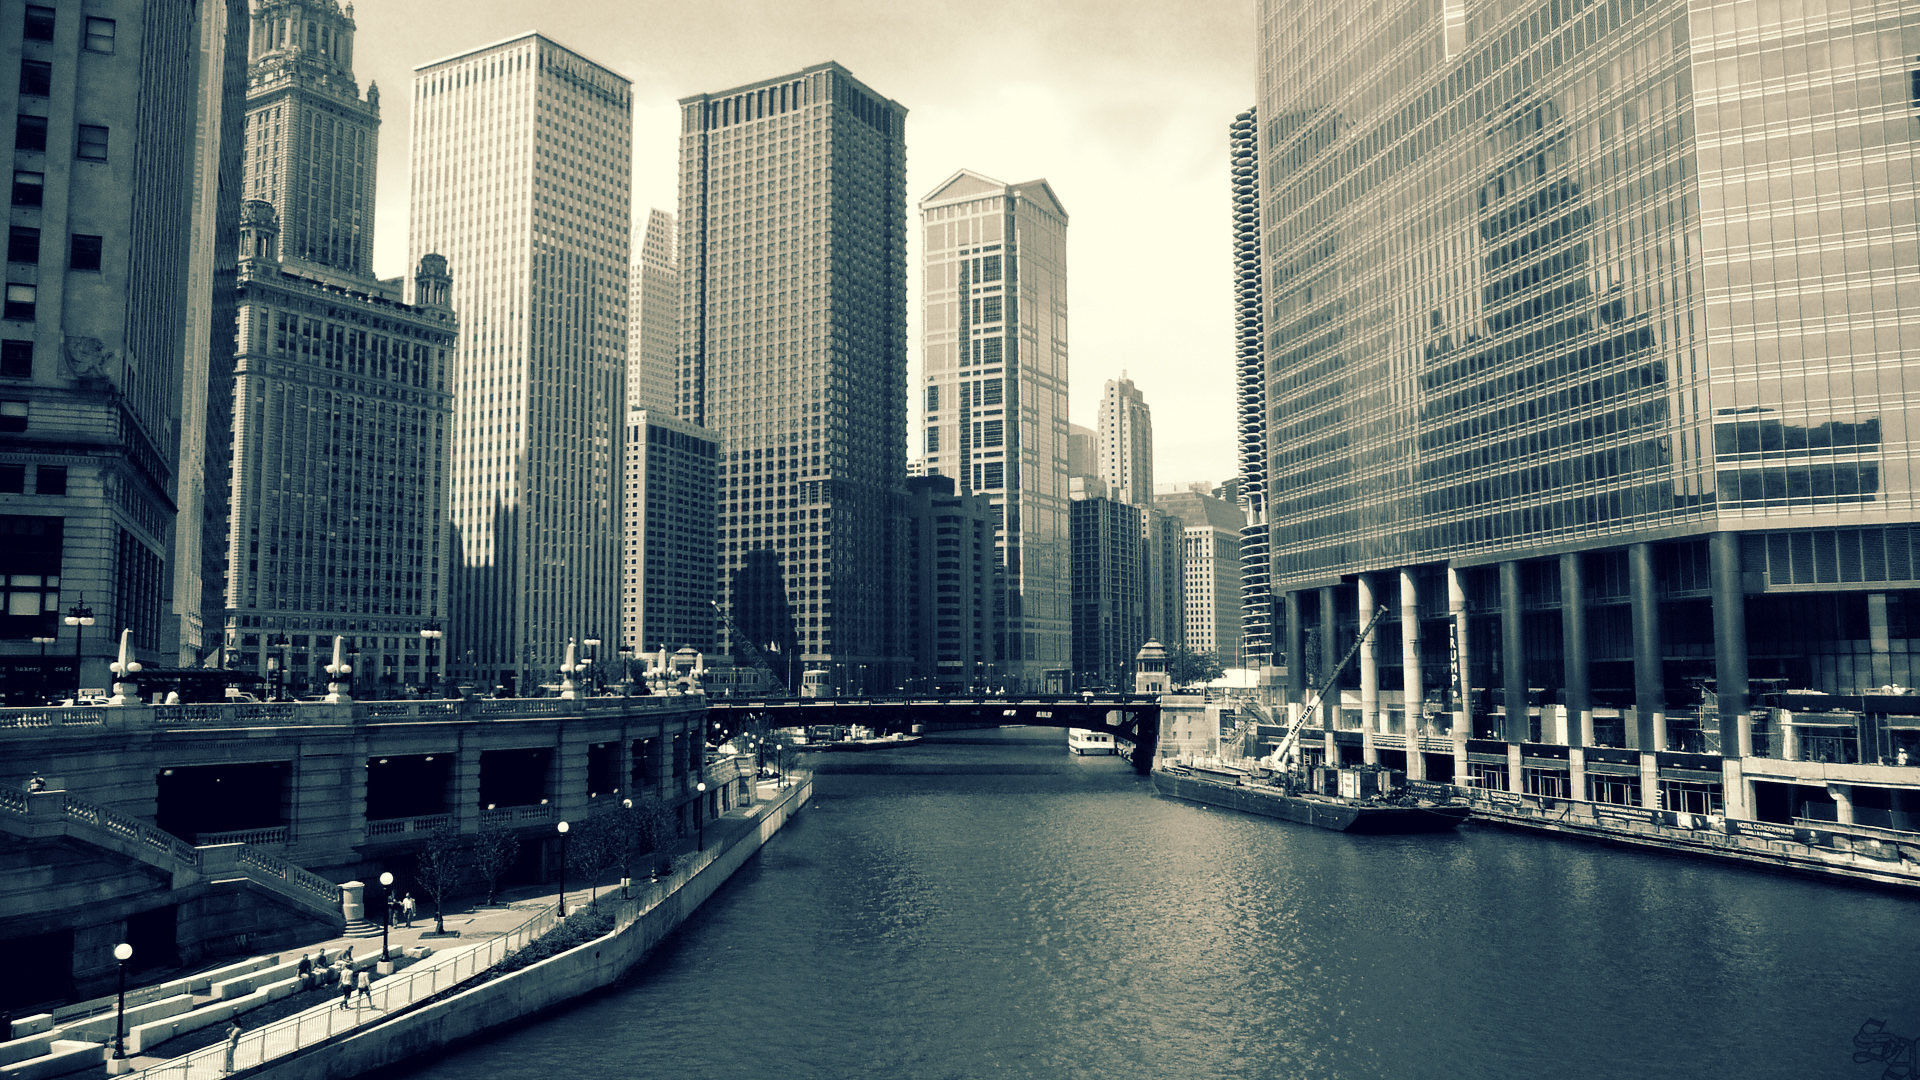 1920x1080 Download: Old Chicago HD Wallpaper